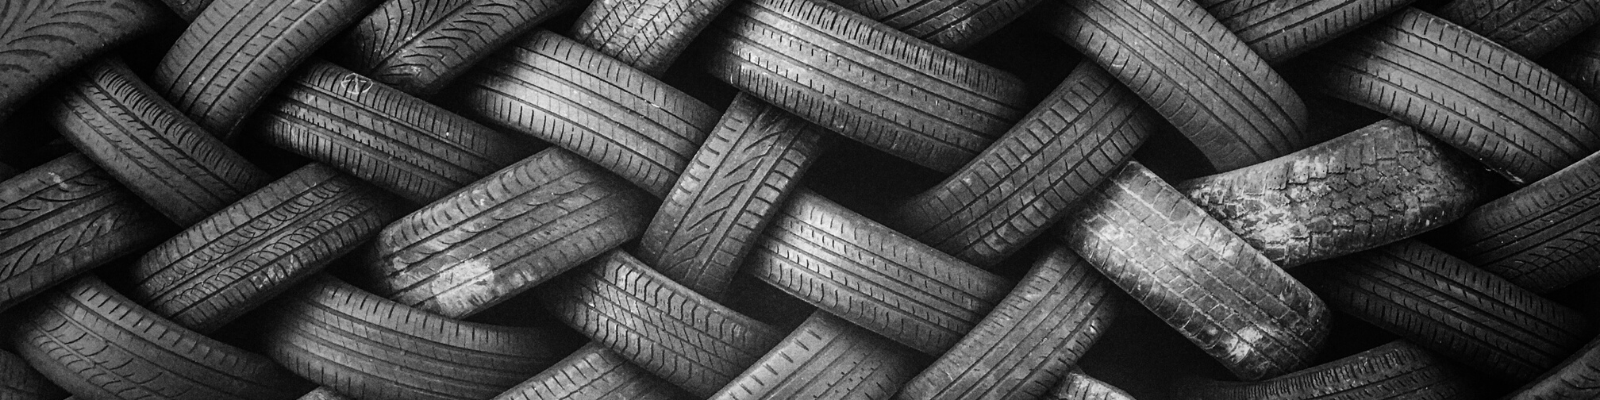 is buying used tires safe?